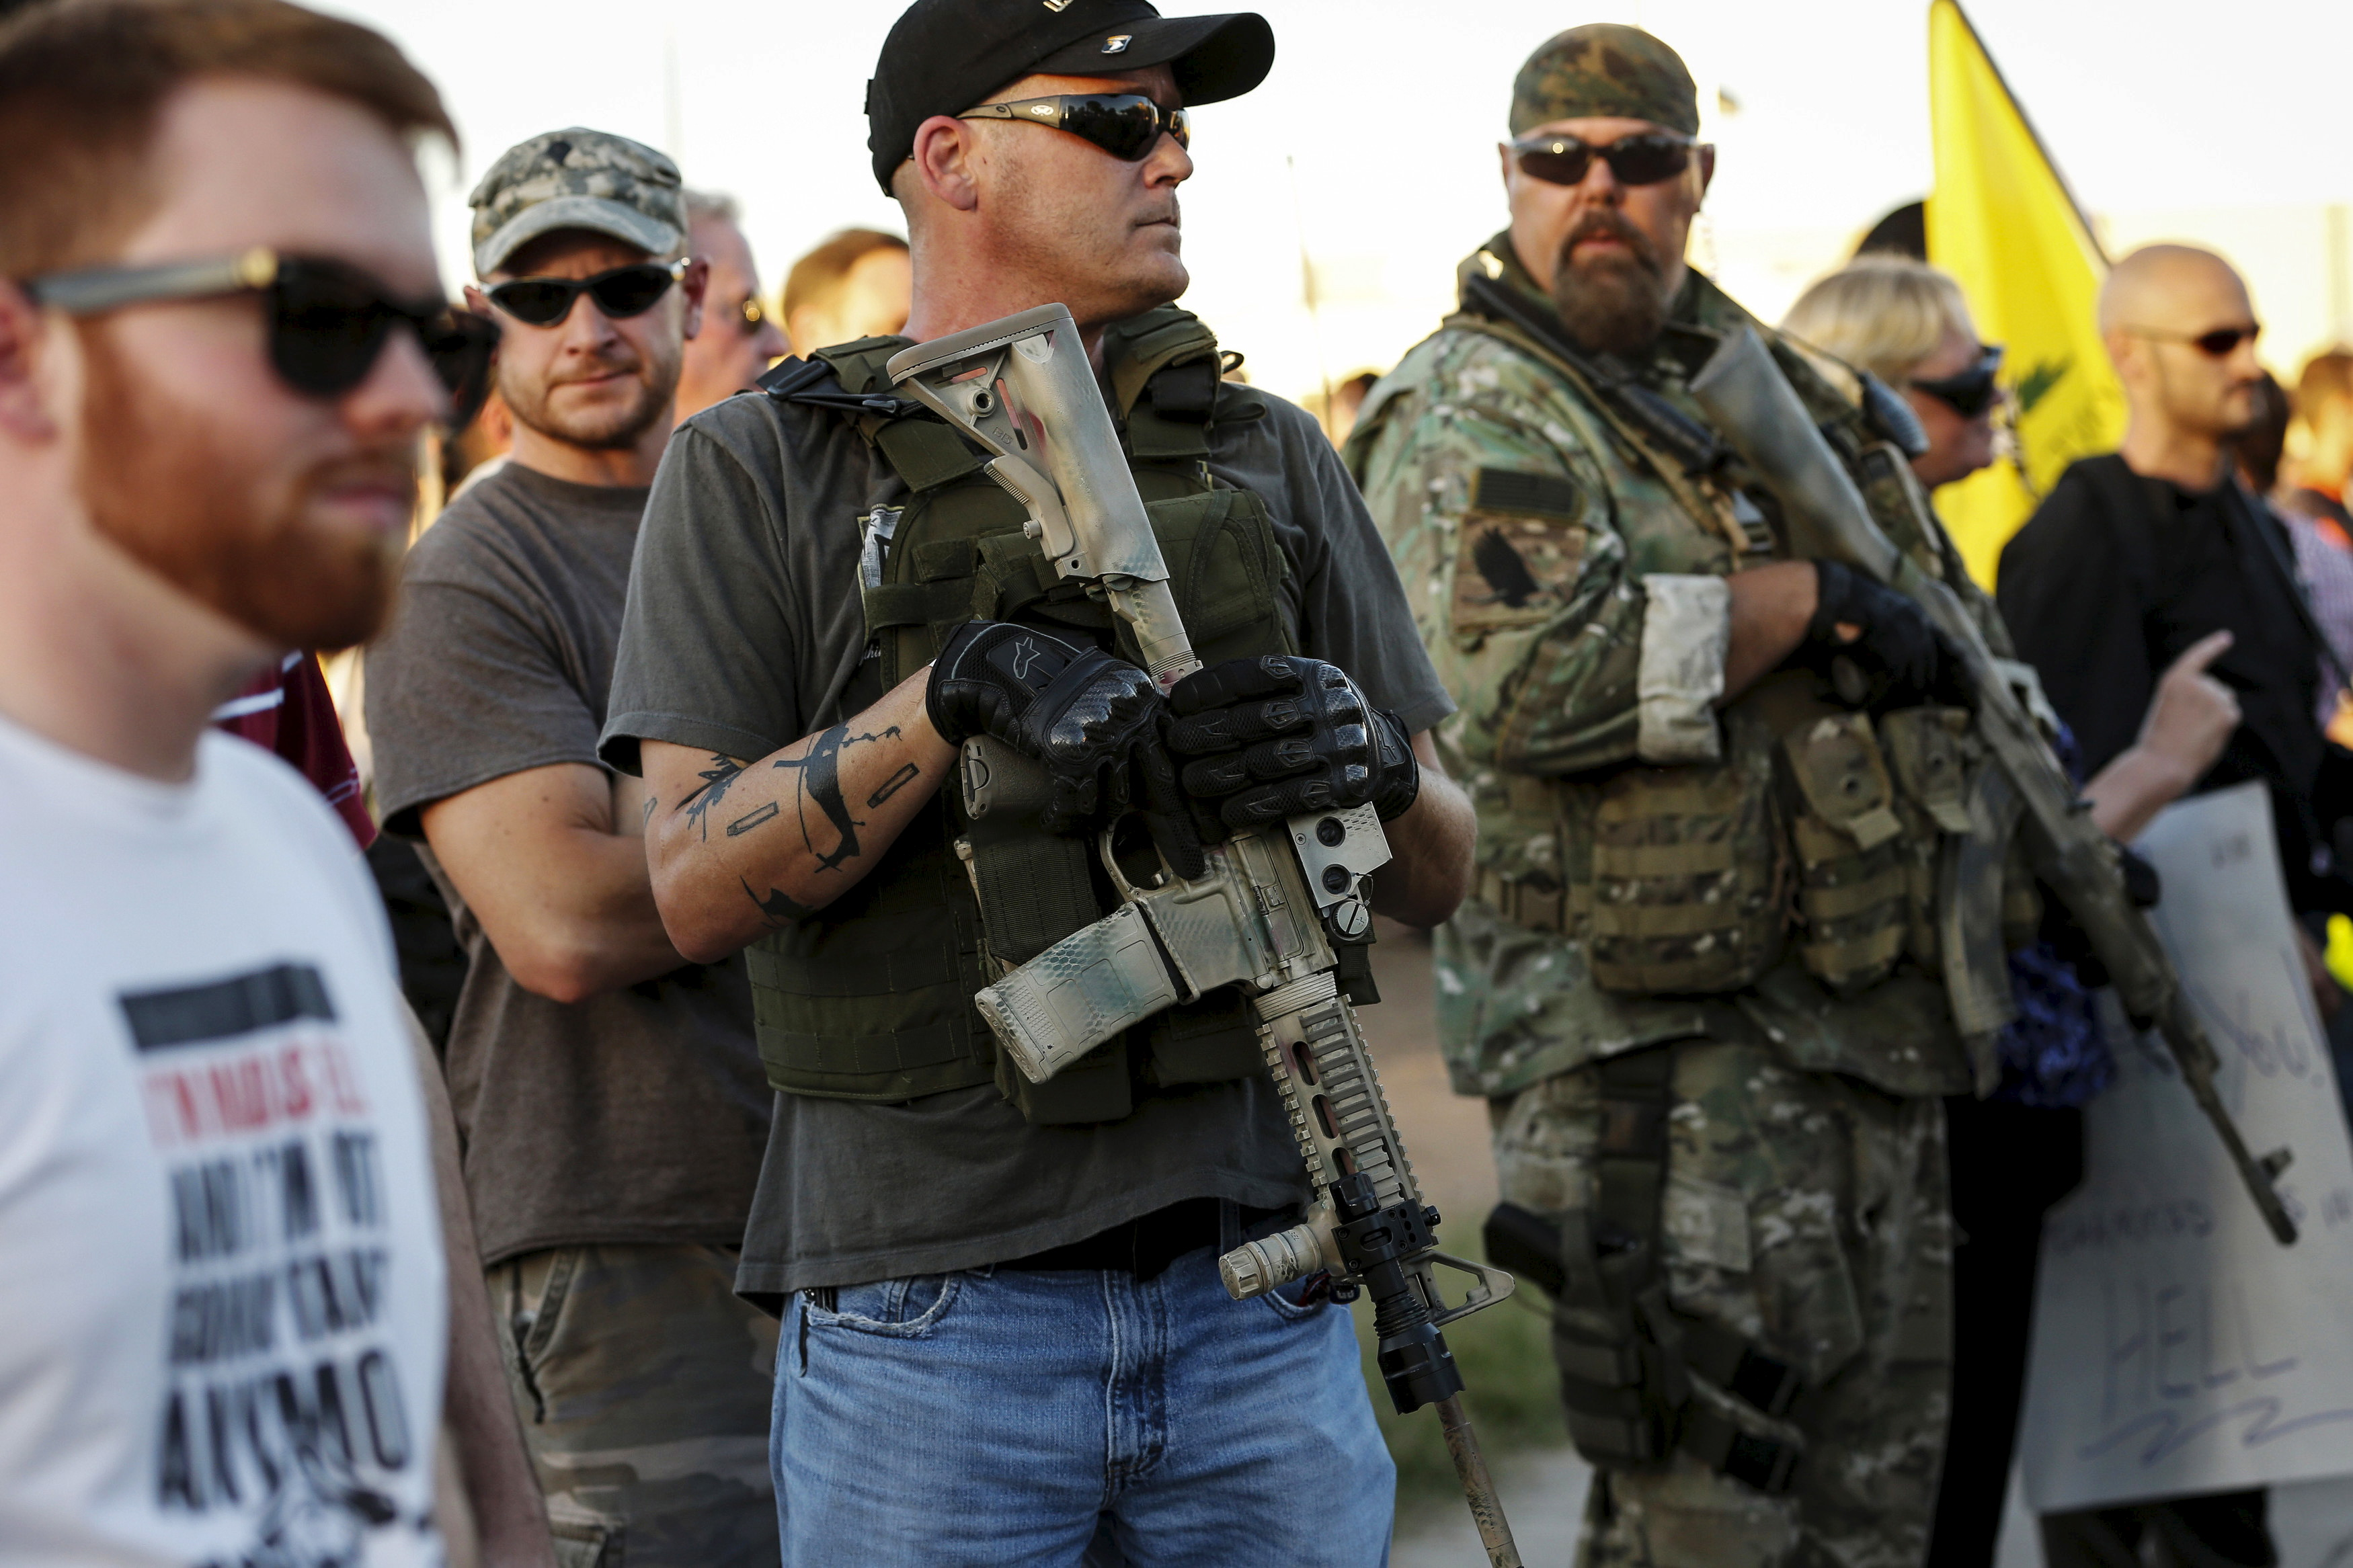 "Men carrying rifles attend a ""Freedom of Speech Rally Round II"" across from the Islamic Community Center of Phoenix, Arizona May 29, 2015. Photo by Nancy Wiechec/Reuters."